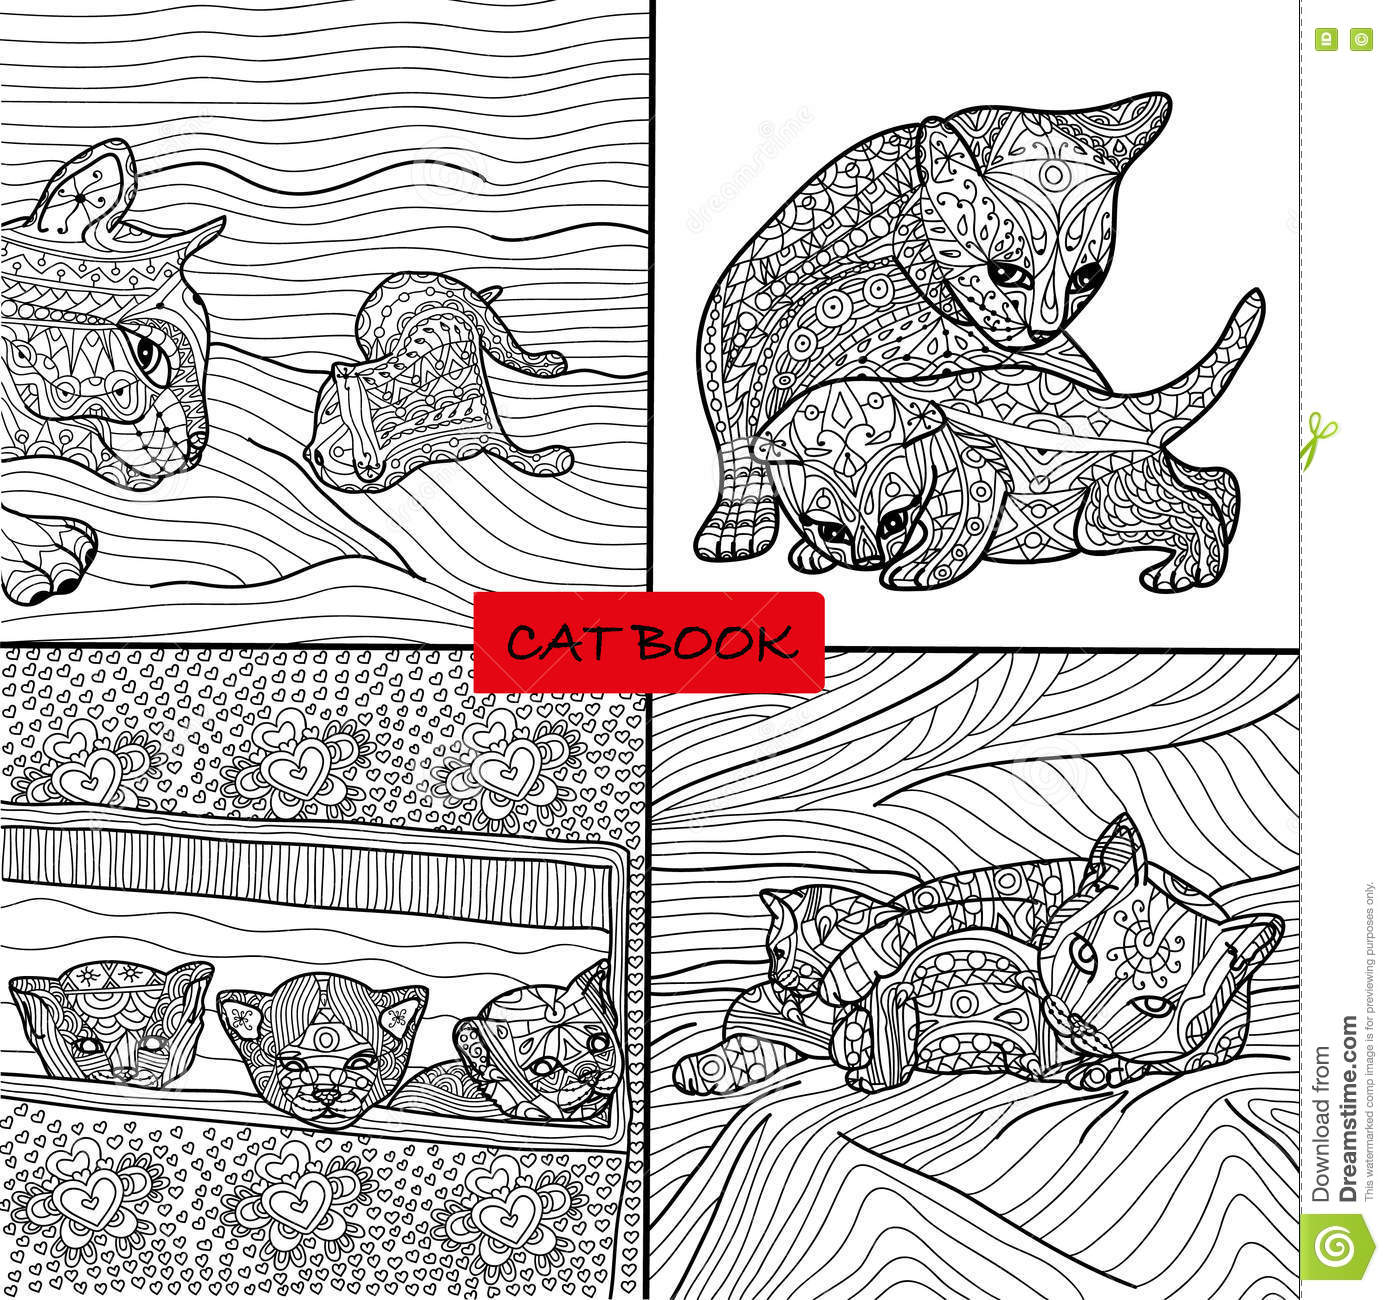 Coloring books for adults and children - Coloring Book For Adults Cat Pages For Adults And Children Doodle Adult Coloring